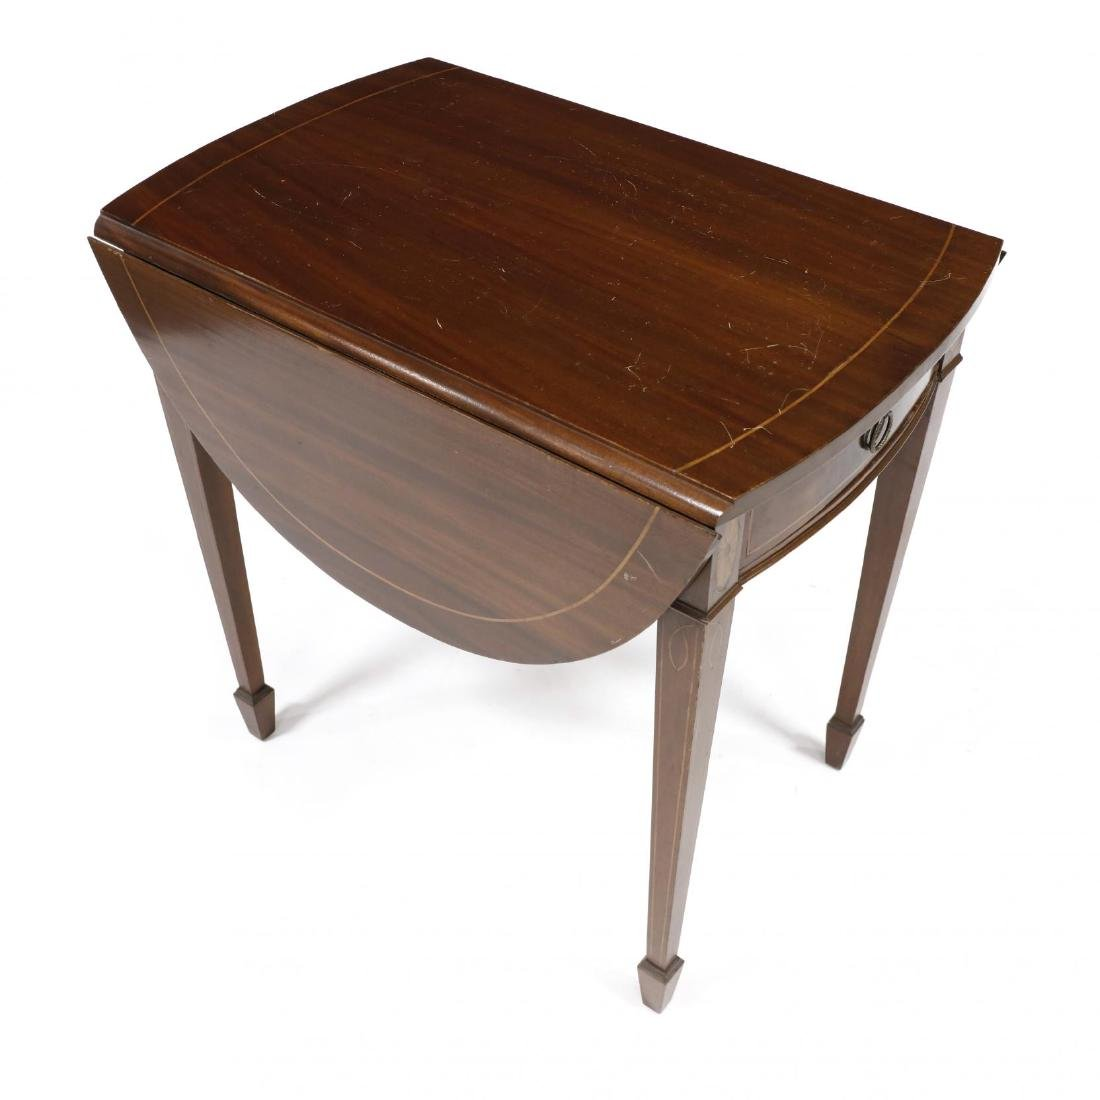 Federal Style Inlaid Pembroke Table - 2